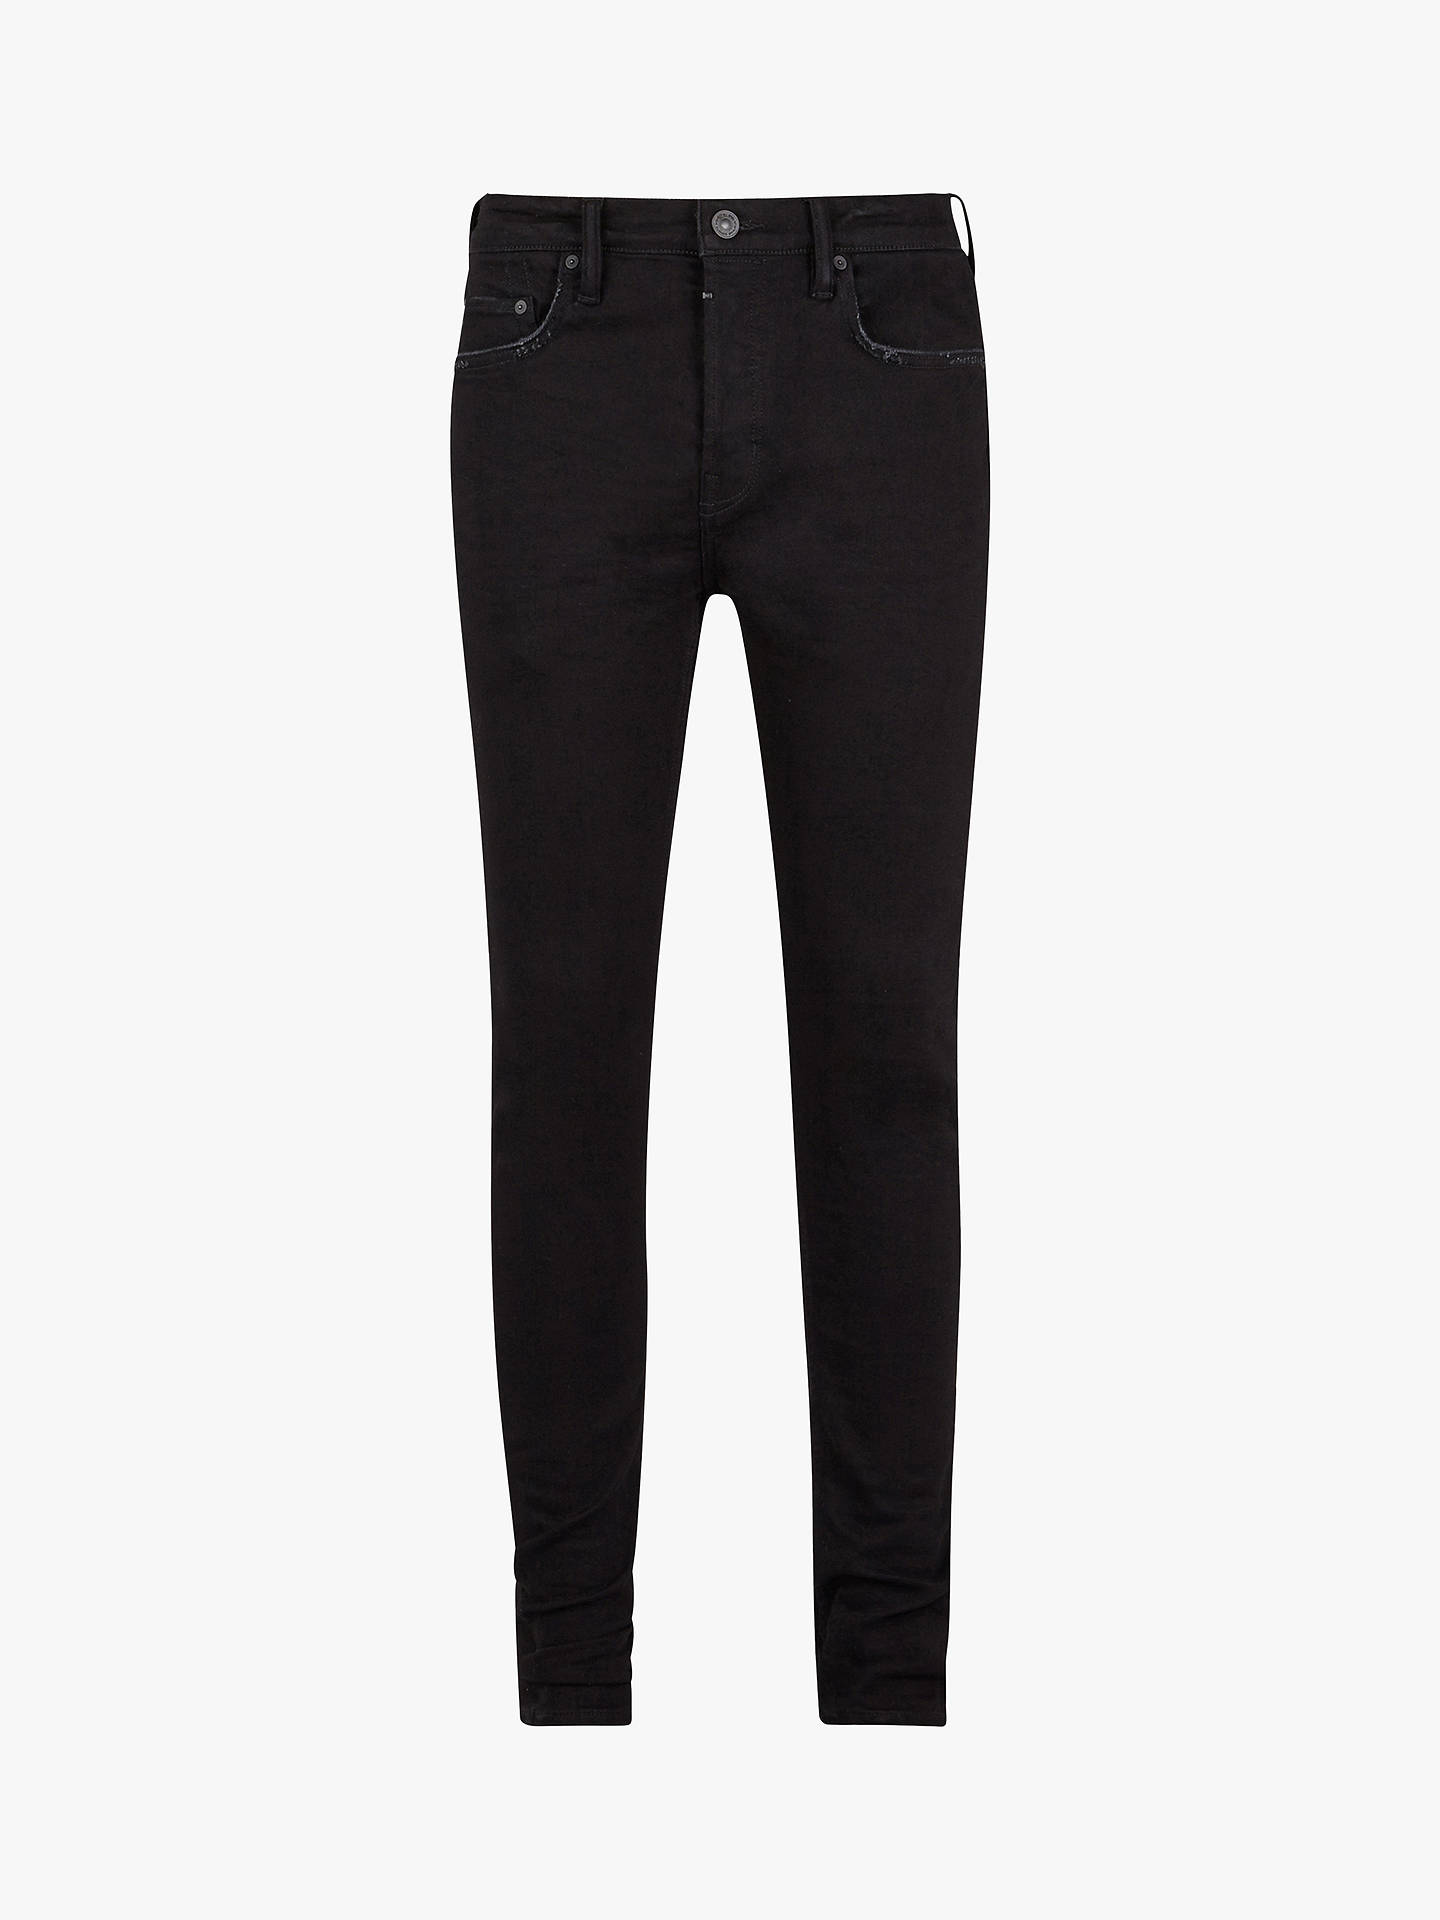 BuyAllSaints Cigarette Skinny Fit Jeans, Jet Black, 28R Online at johnlewis.com